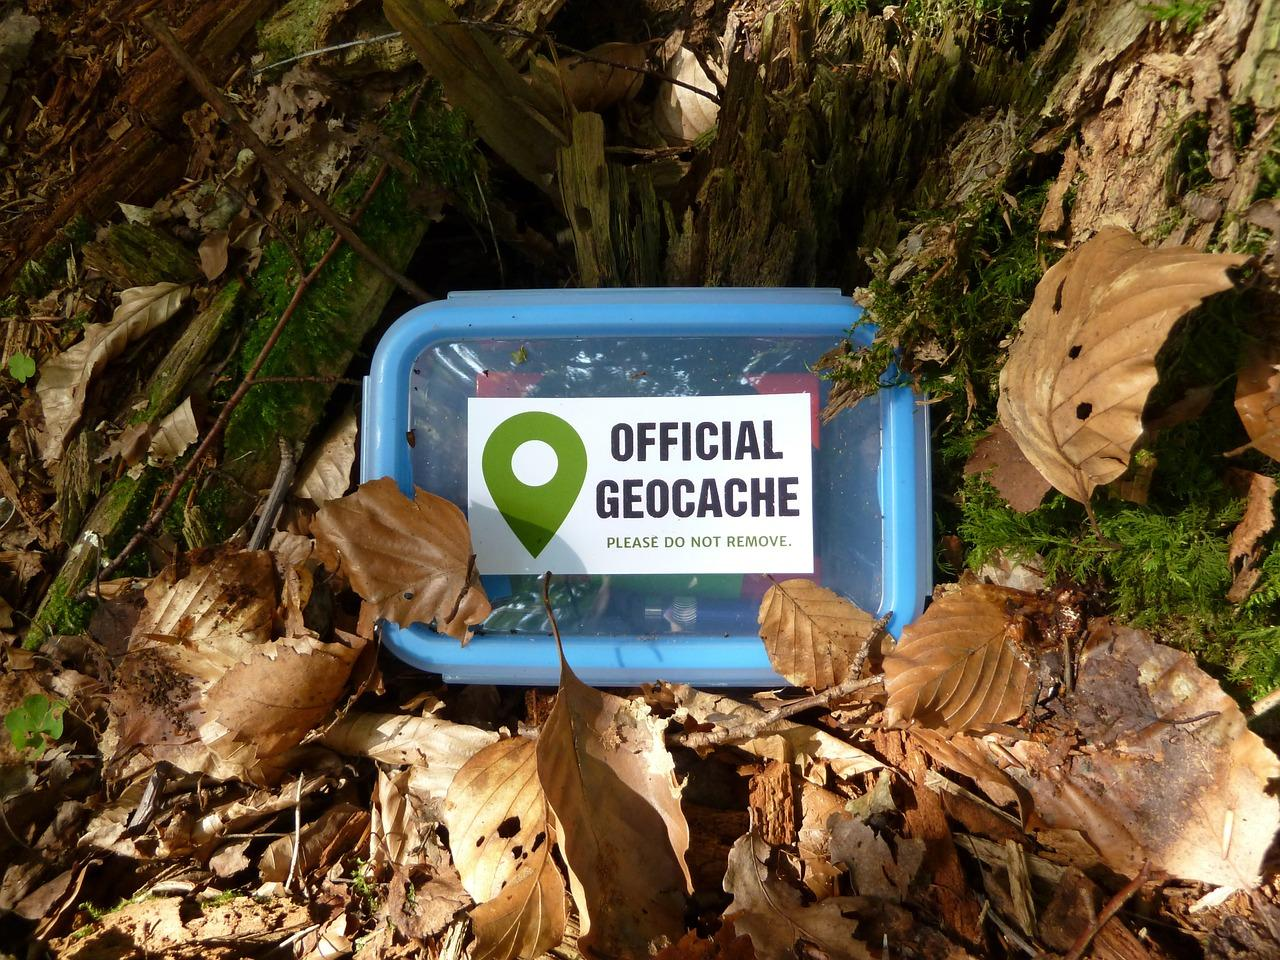 Image of a labeled geocache plastic container on the forest floor